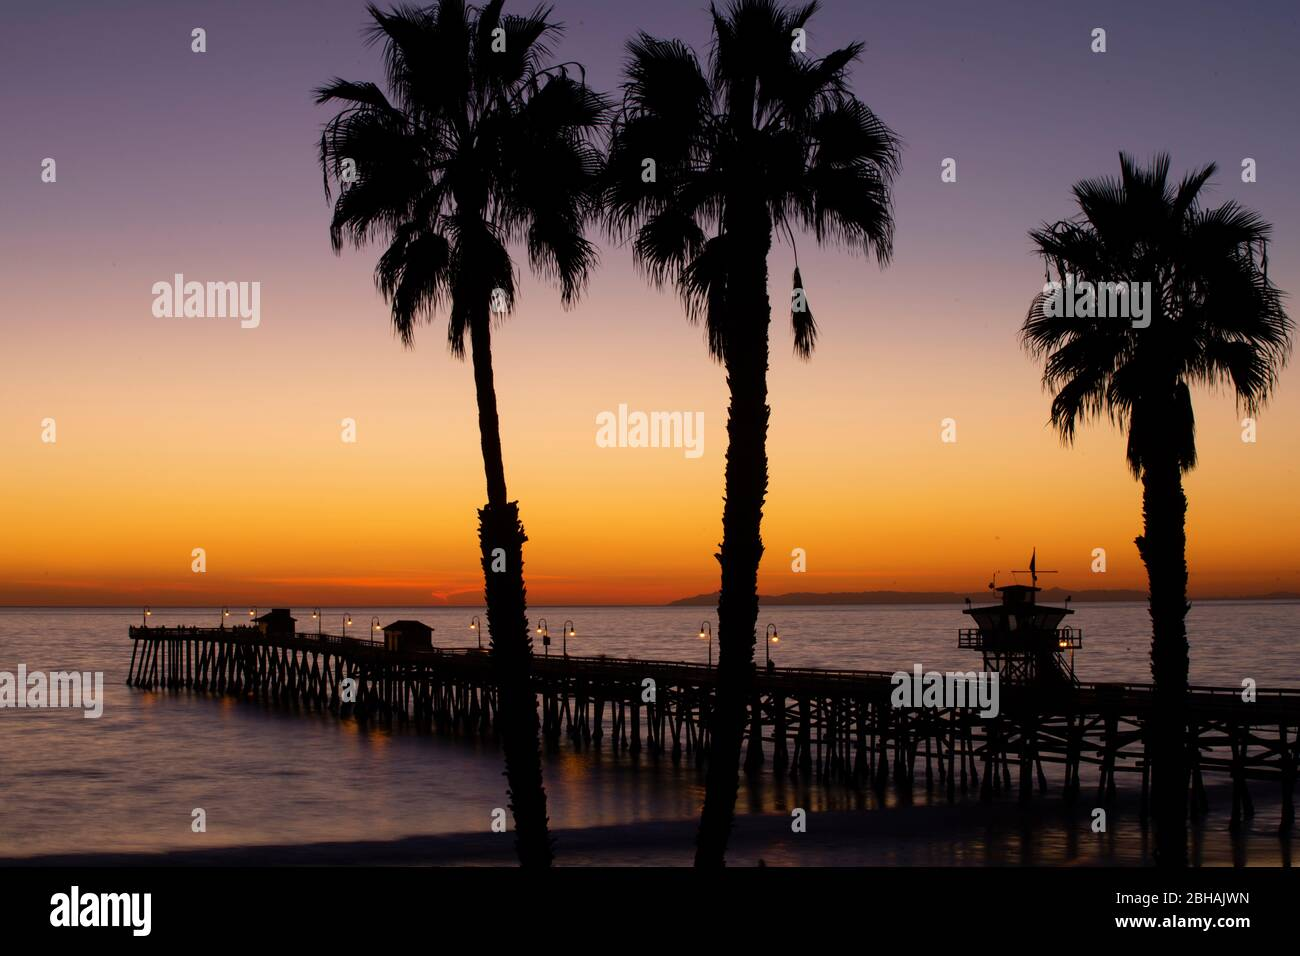 Huntington Beach Pier And Palm Trees At Sunset California Usa Stock Photo 354890865 Alamy